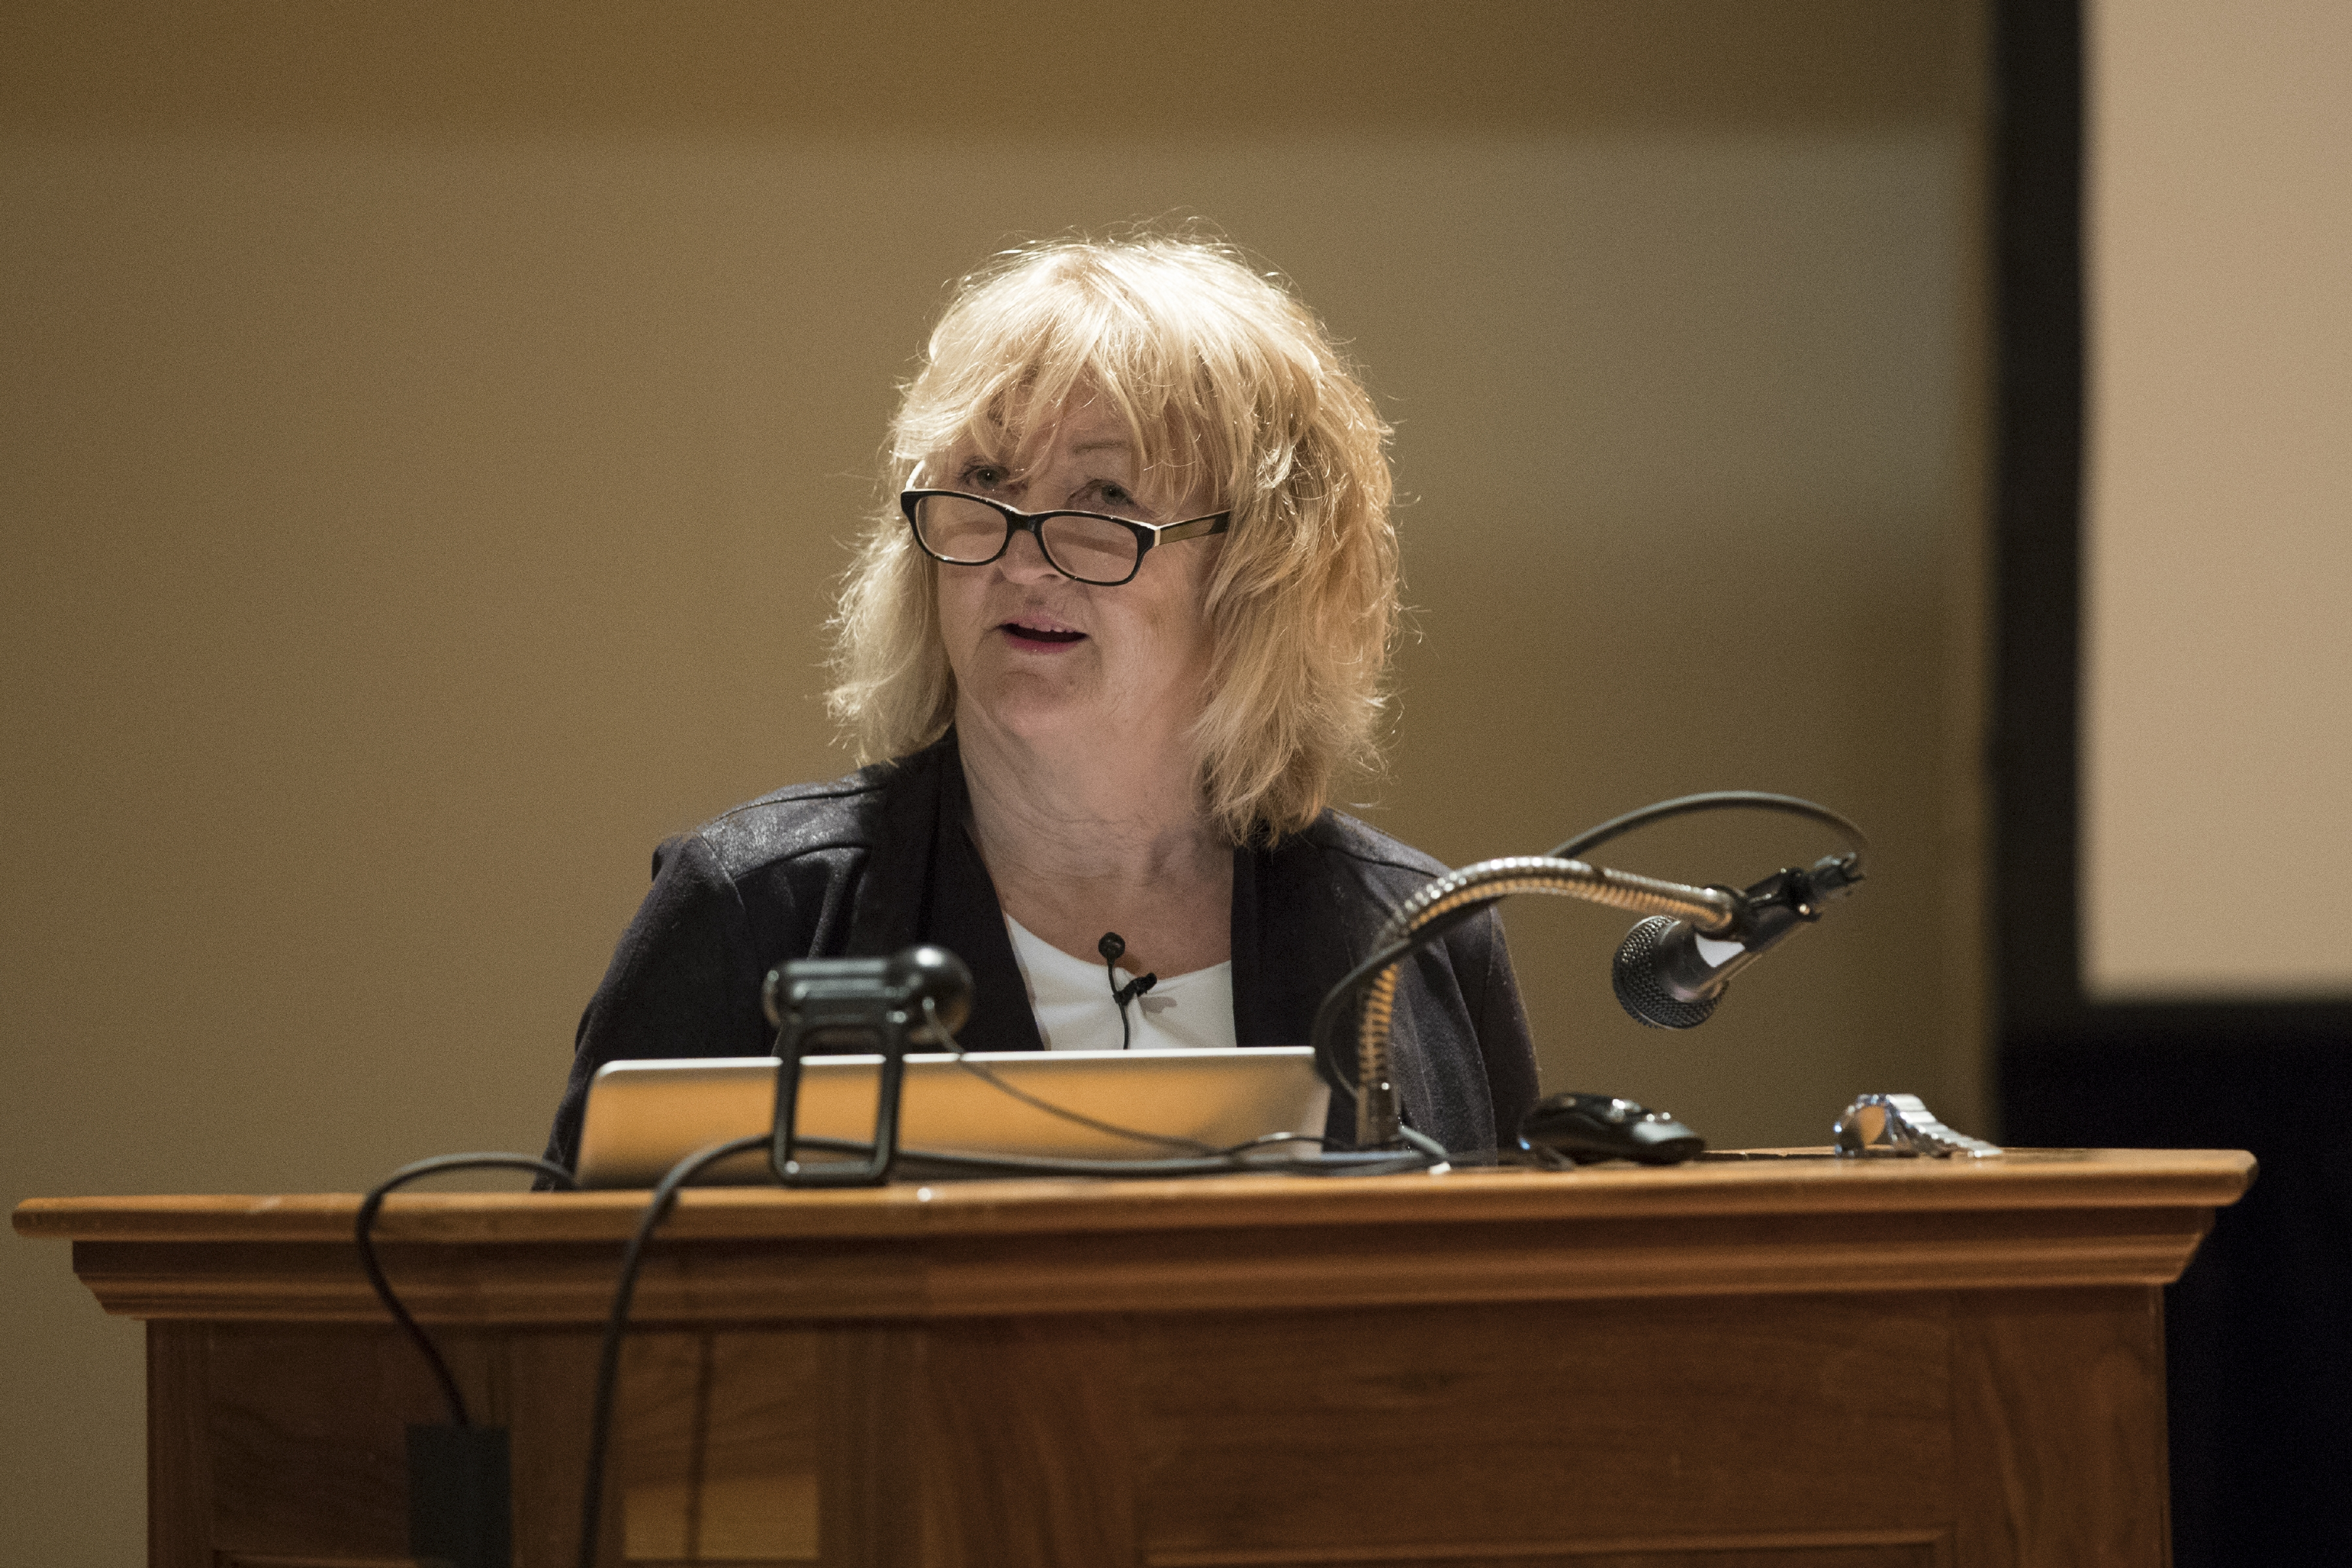 Yvonne Farrell spoke in Old Cabell Hall on Thursday. (Photo by Dan Addison, University Communications)